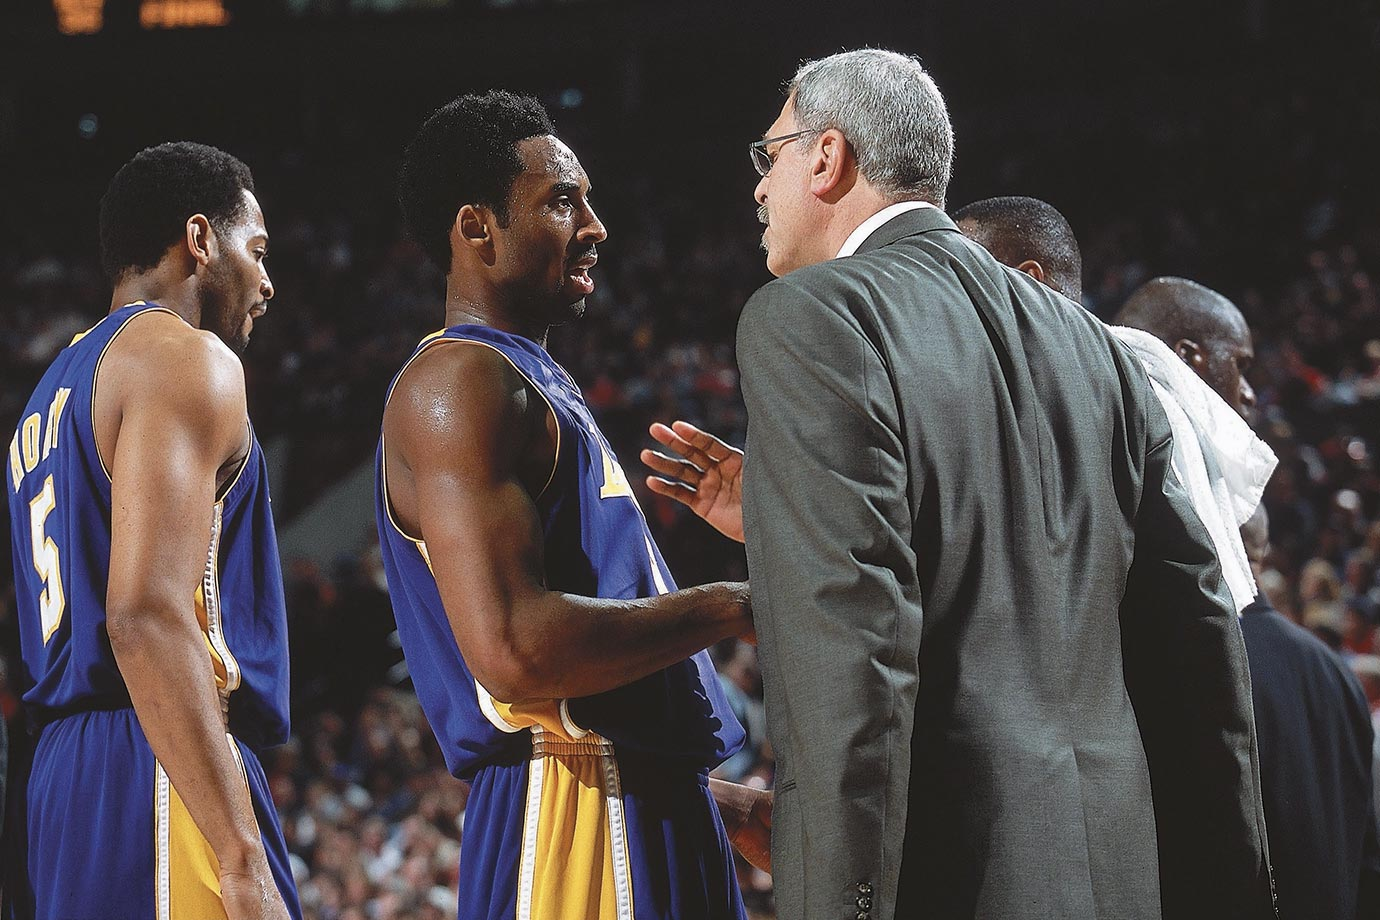 April 29, 2001 — NBA Western Conference First Round, Game 3